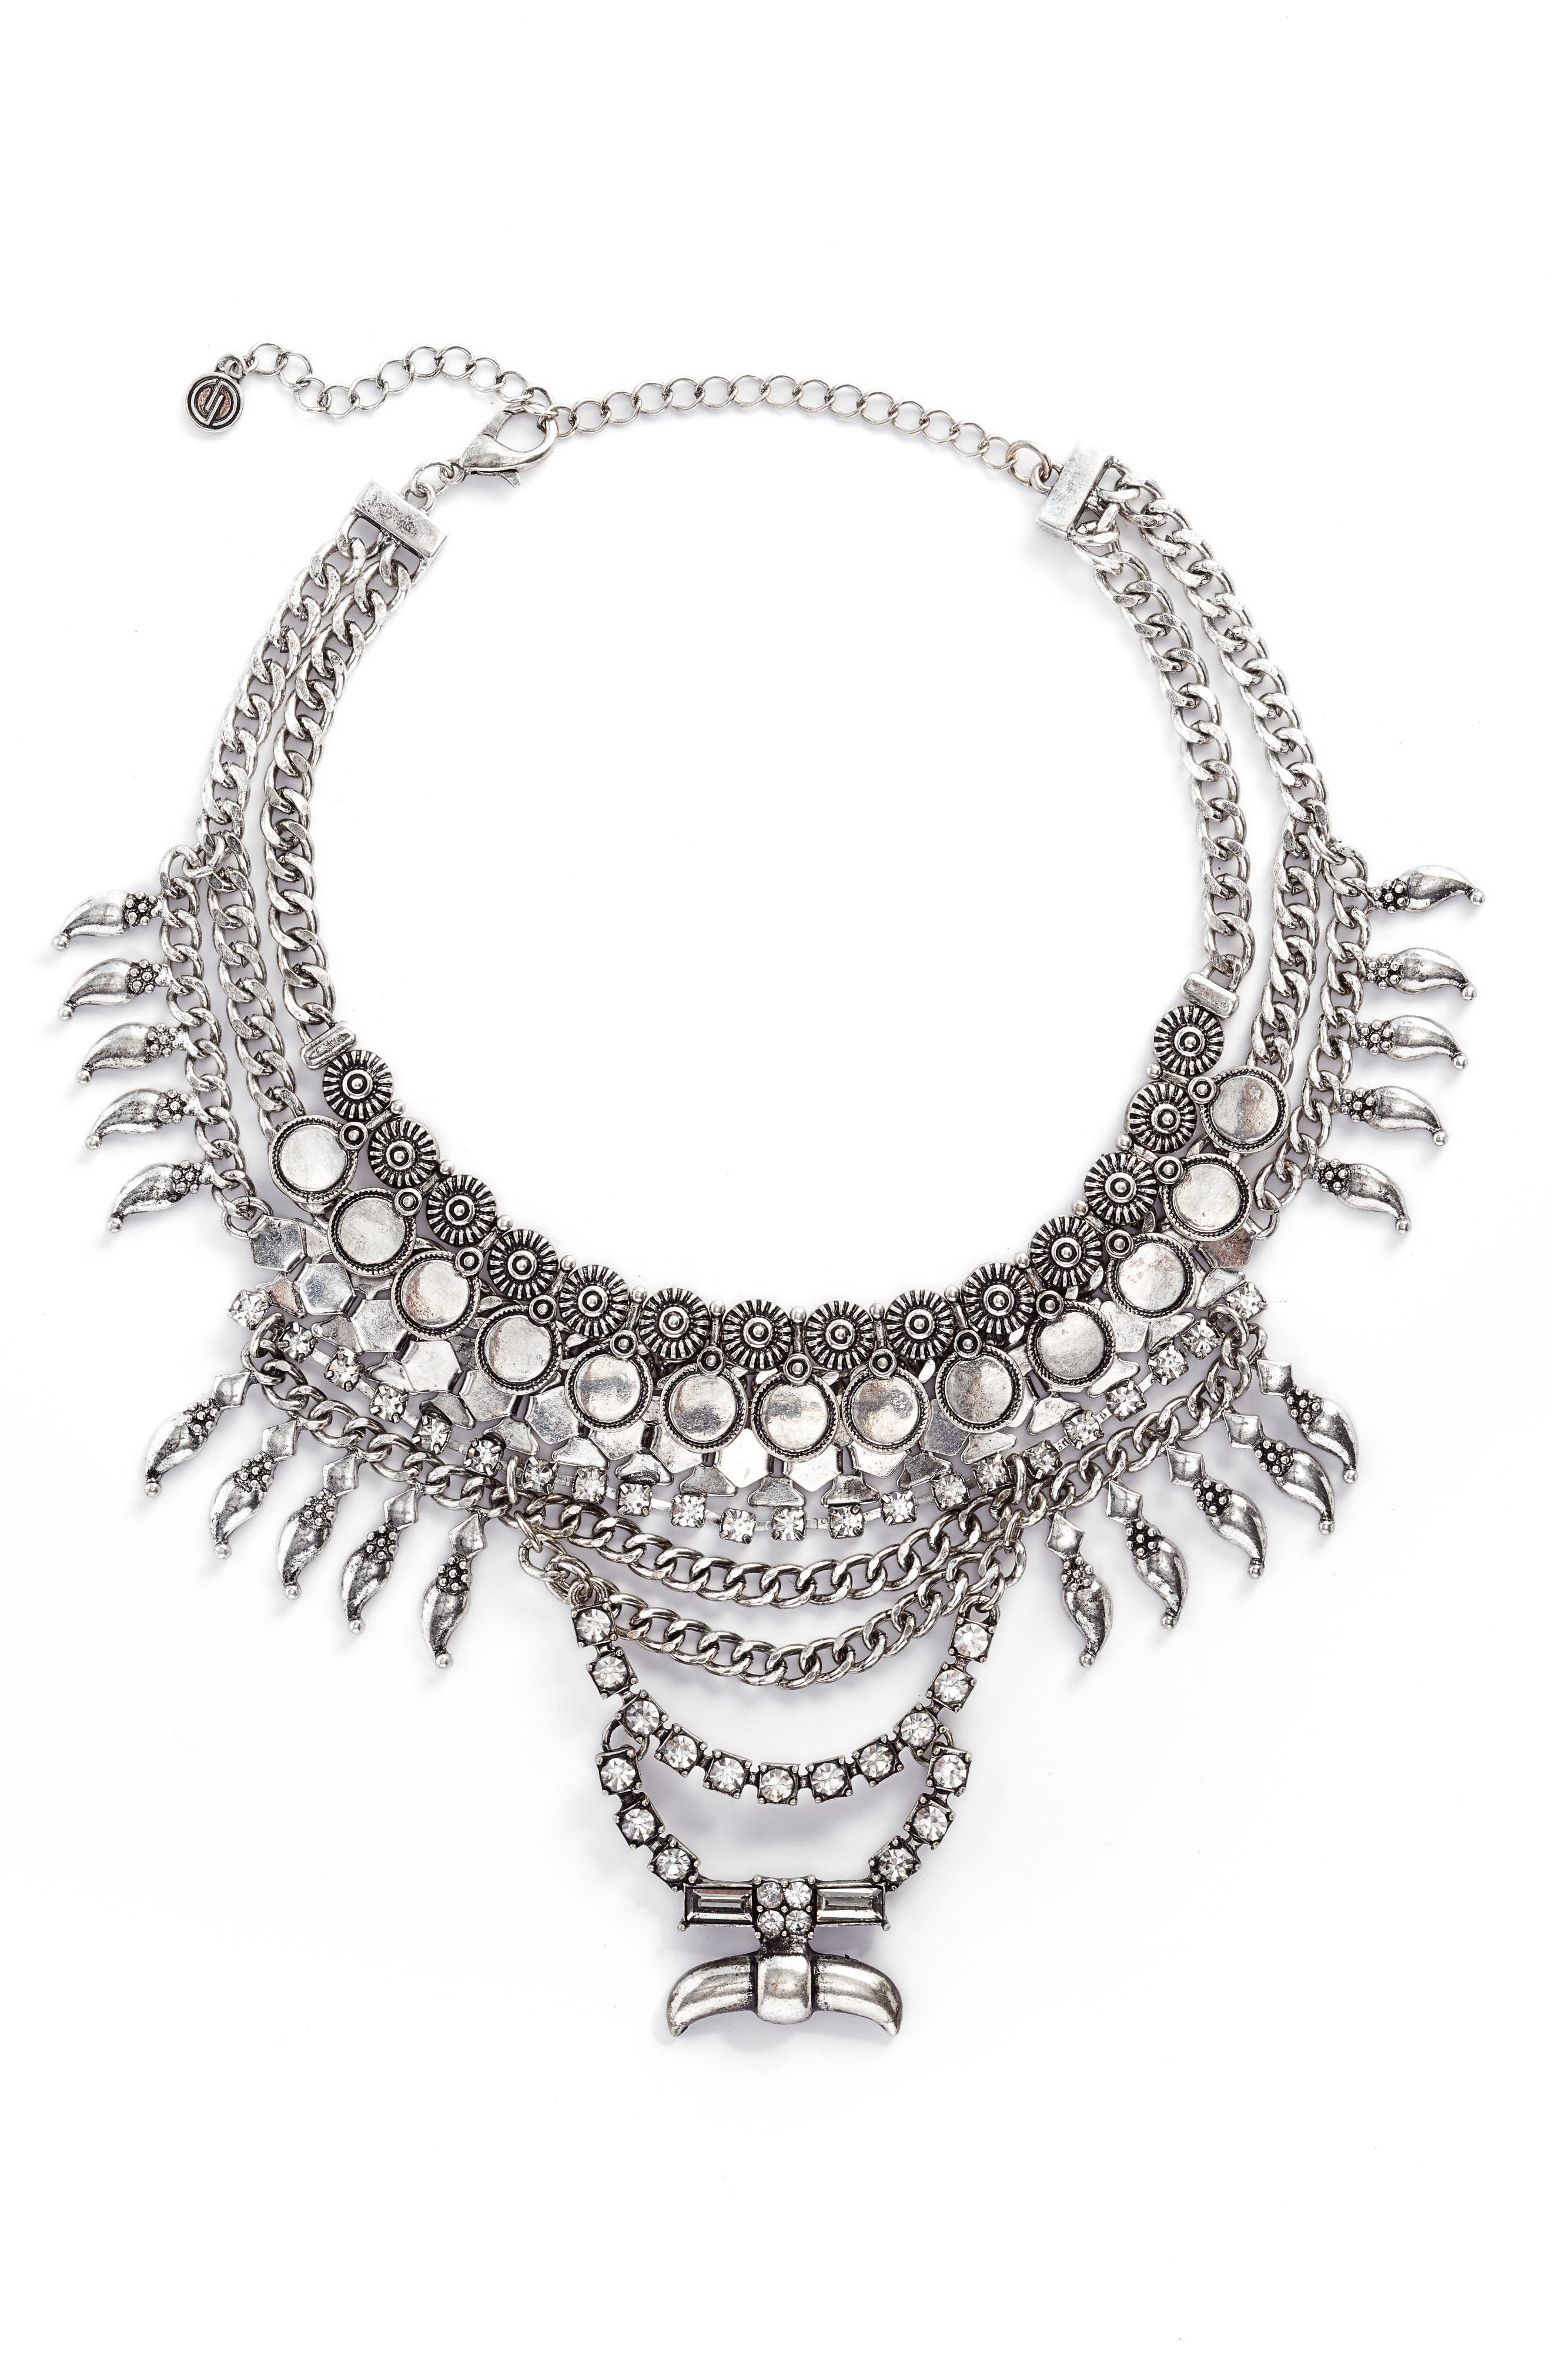 Main Image - DLNLX BY DYLANLEX Crystal & Chain Multistrand Necklace